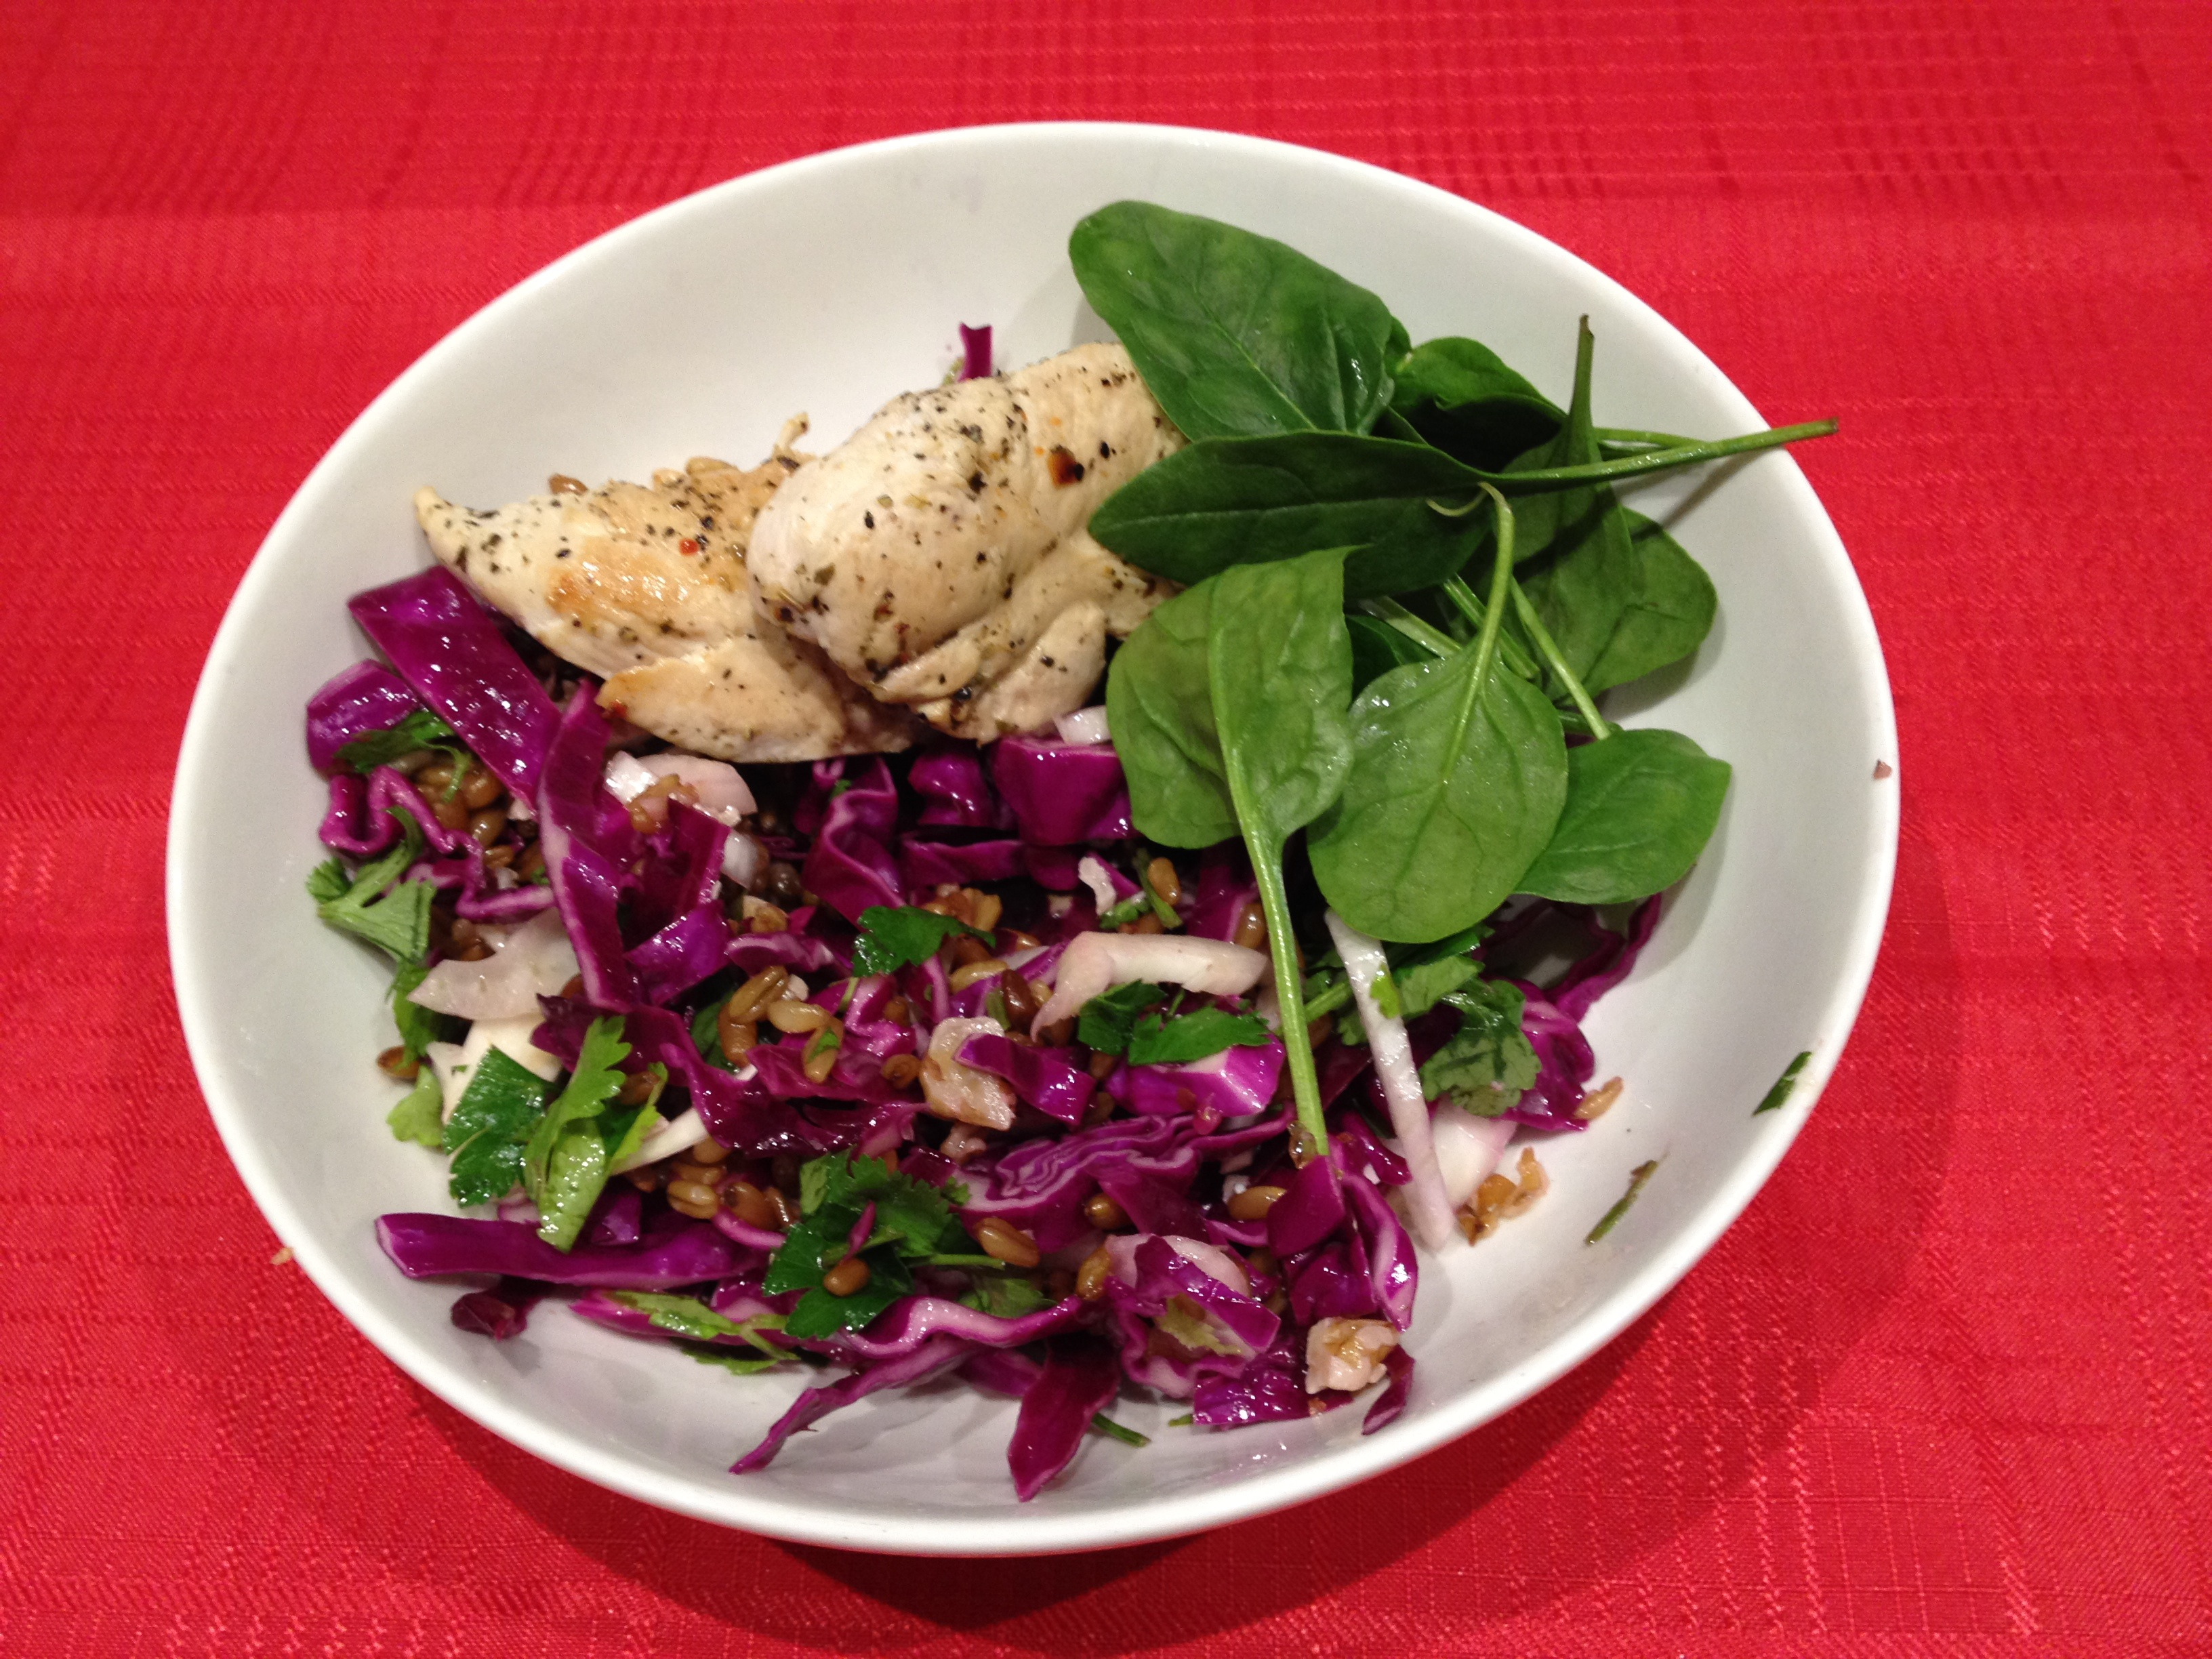 Freekeh used in a meal